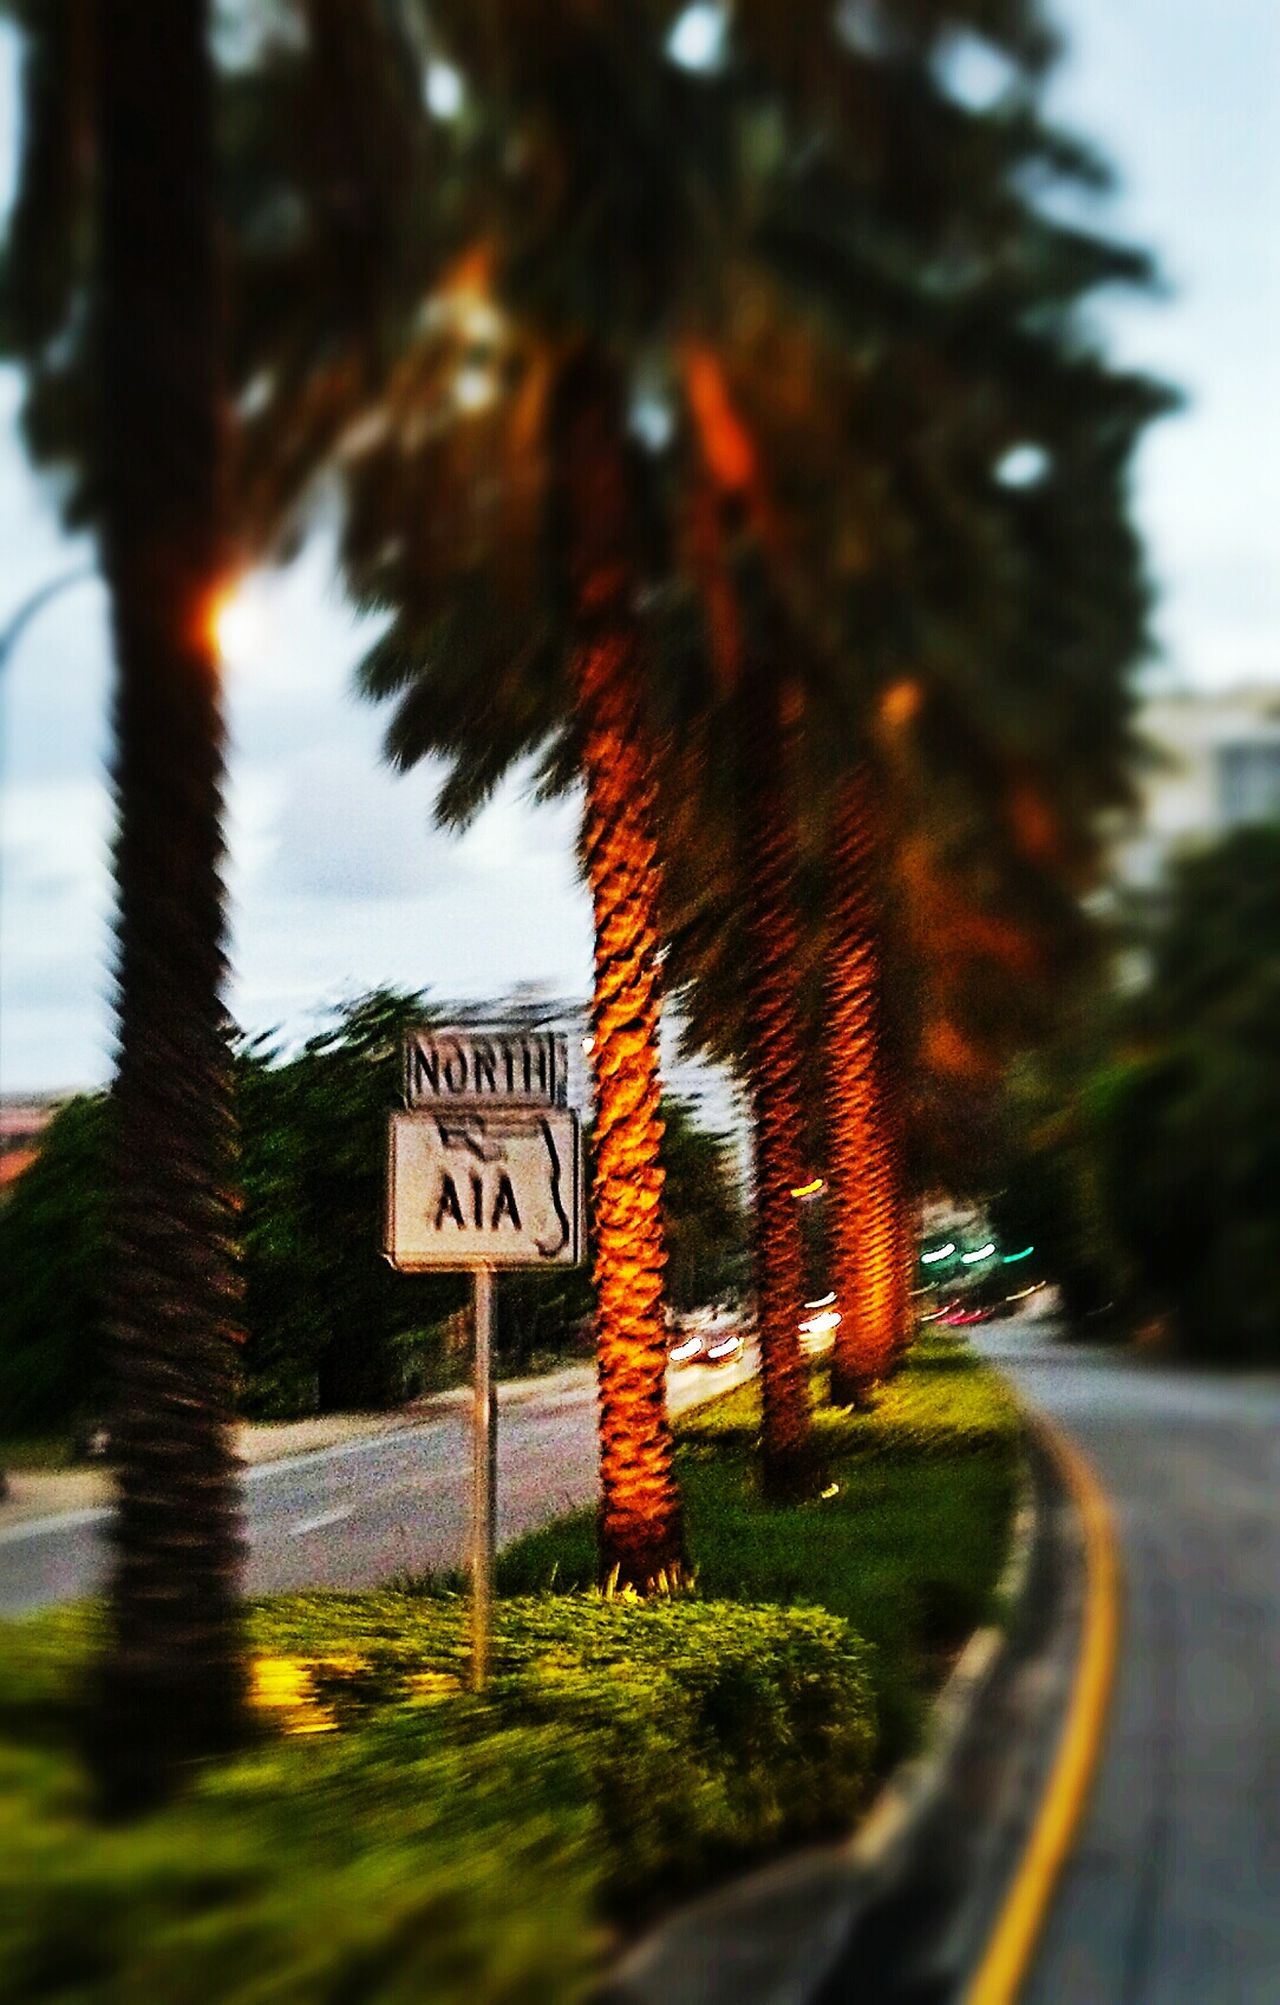 My Year My View Transportation Blurred Motion Road Sign Motion Travel Road A1A No People Vacation Spot Beach Road Scenic Drive Nature Day Outdoors Sky Text Tree Excitement Florida Beaches Tree Transportation No People Road Sign Text